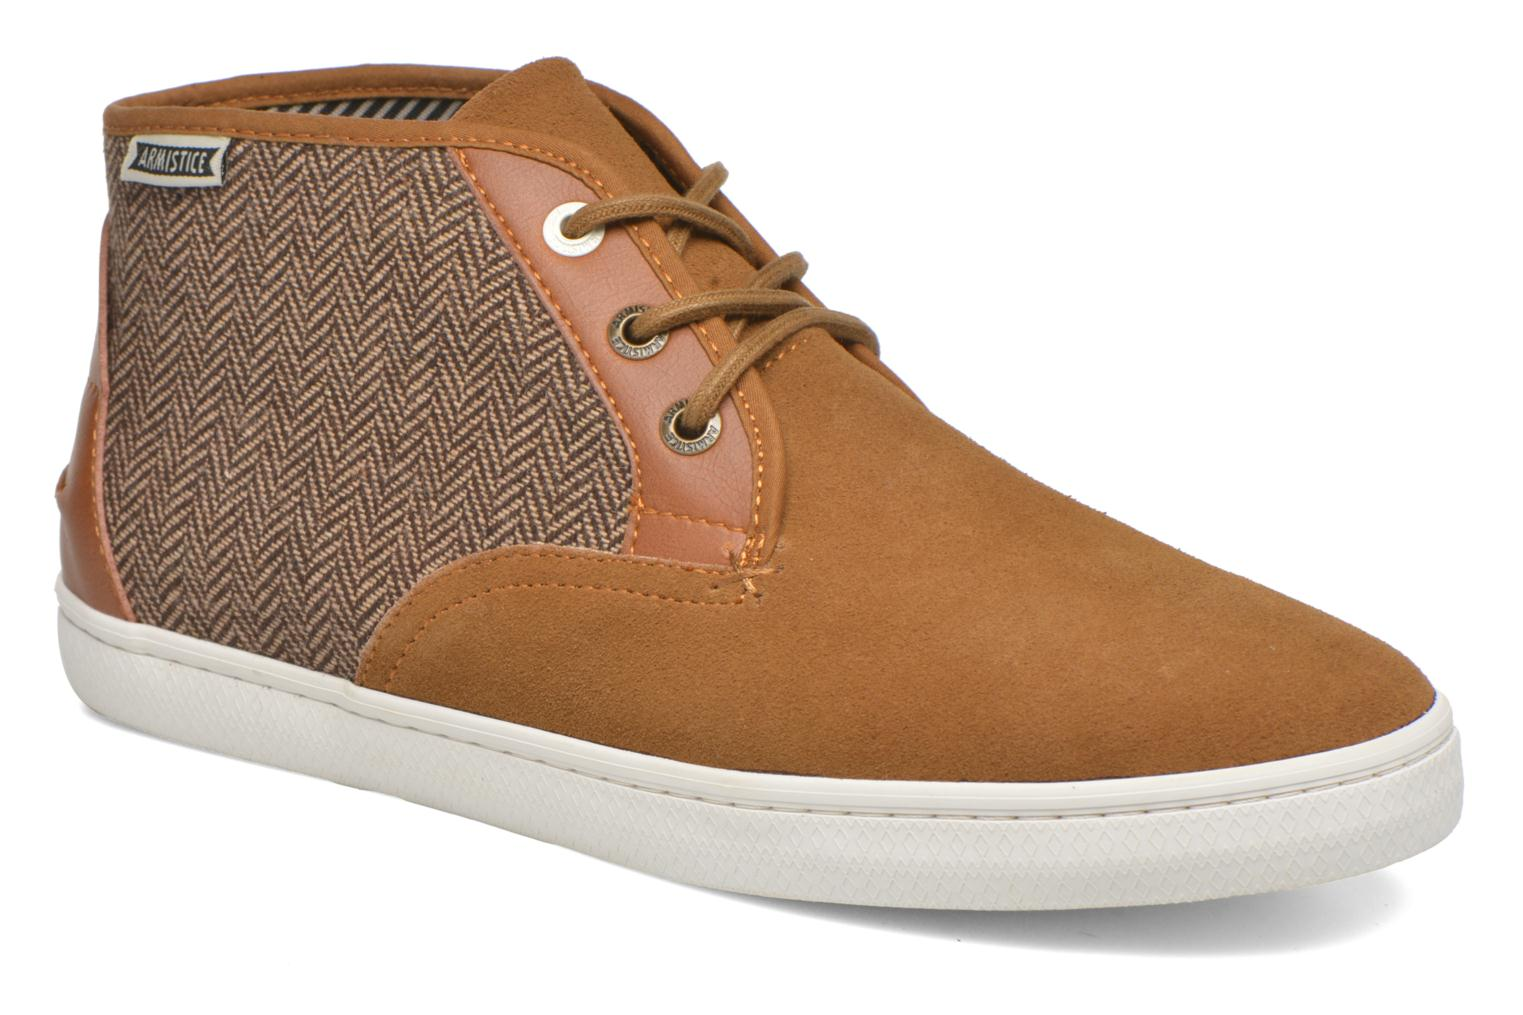 Drone Mid Suede/suit Camel/taupe